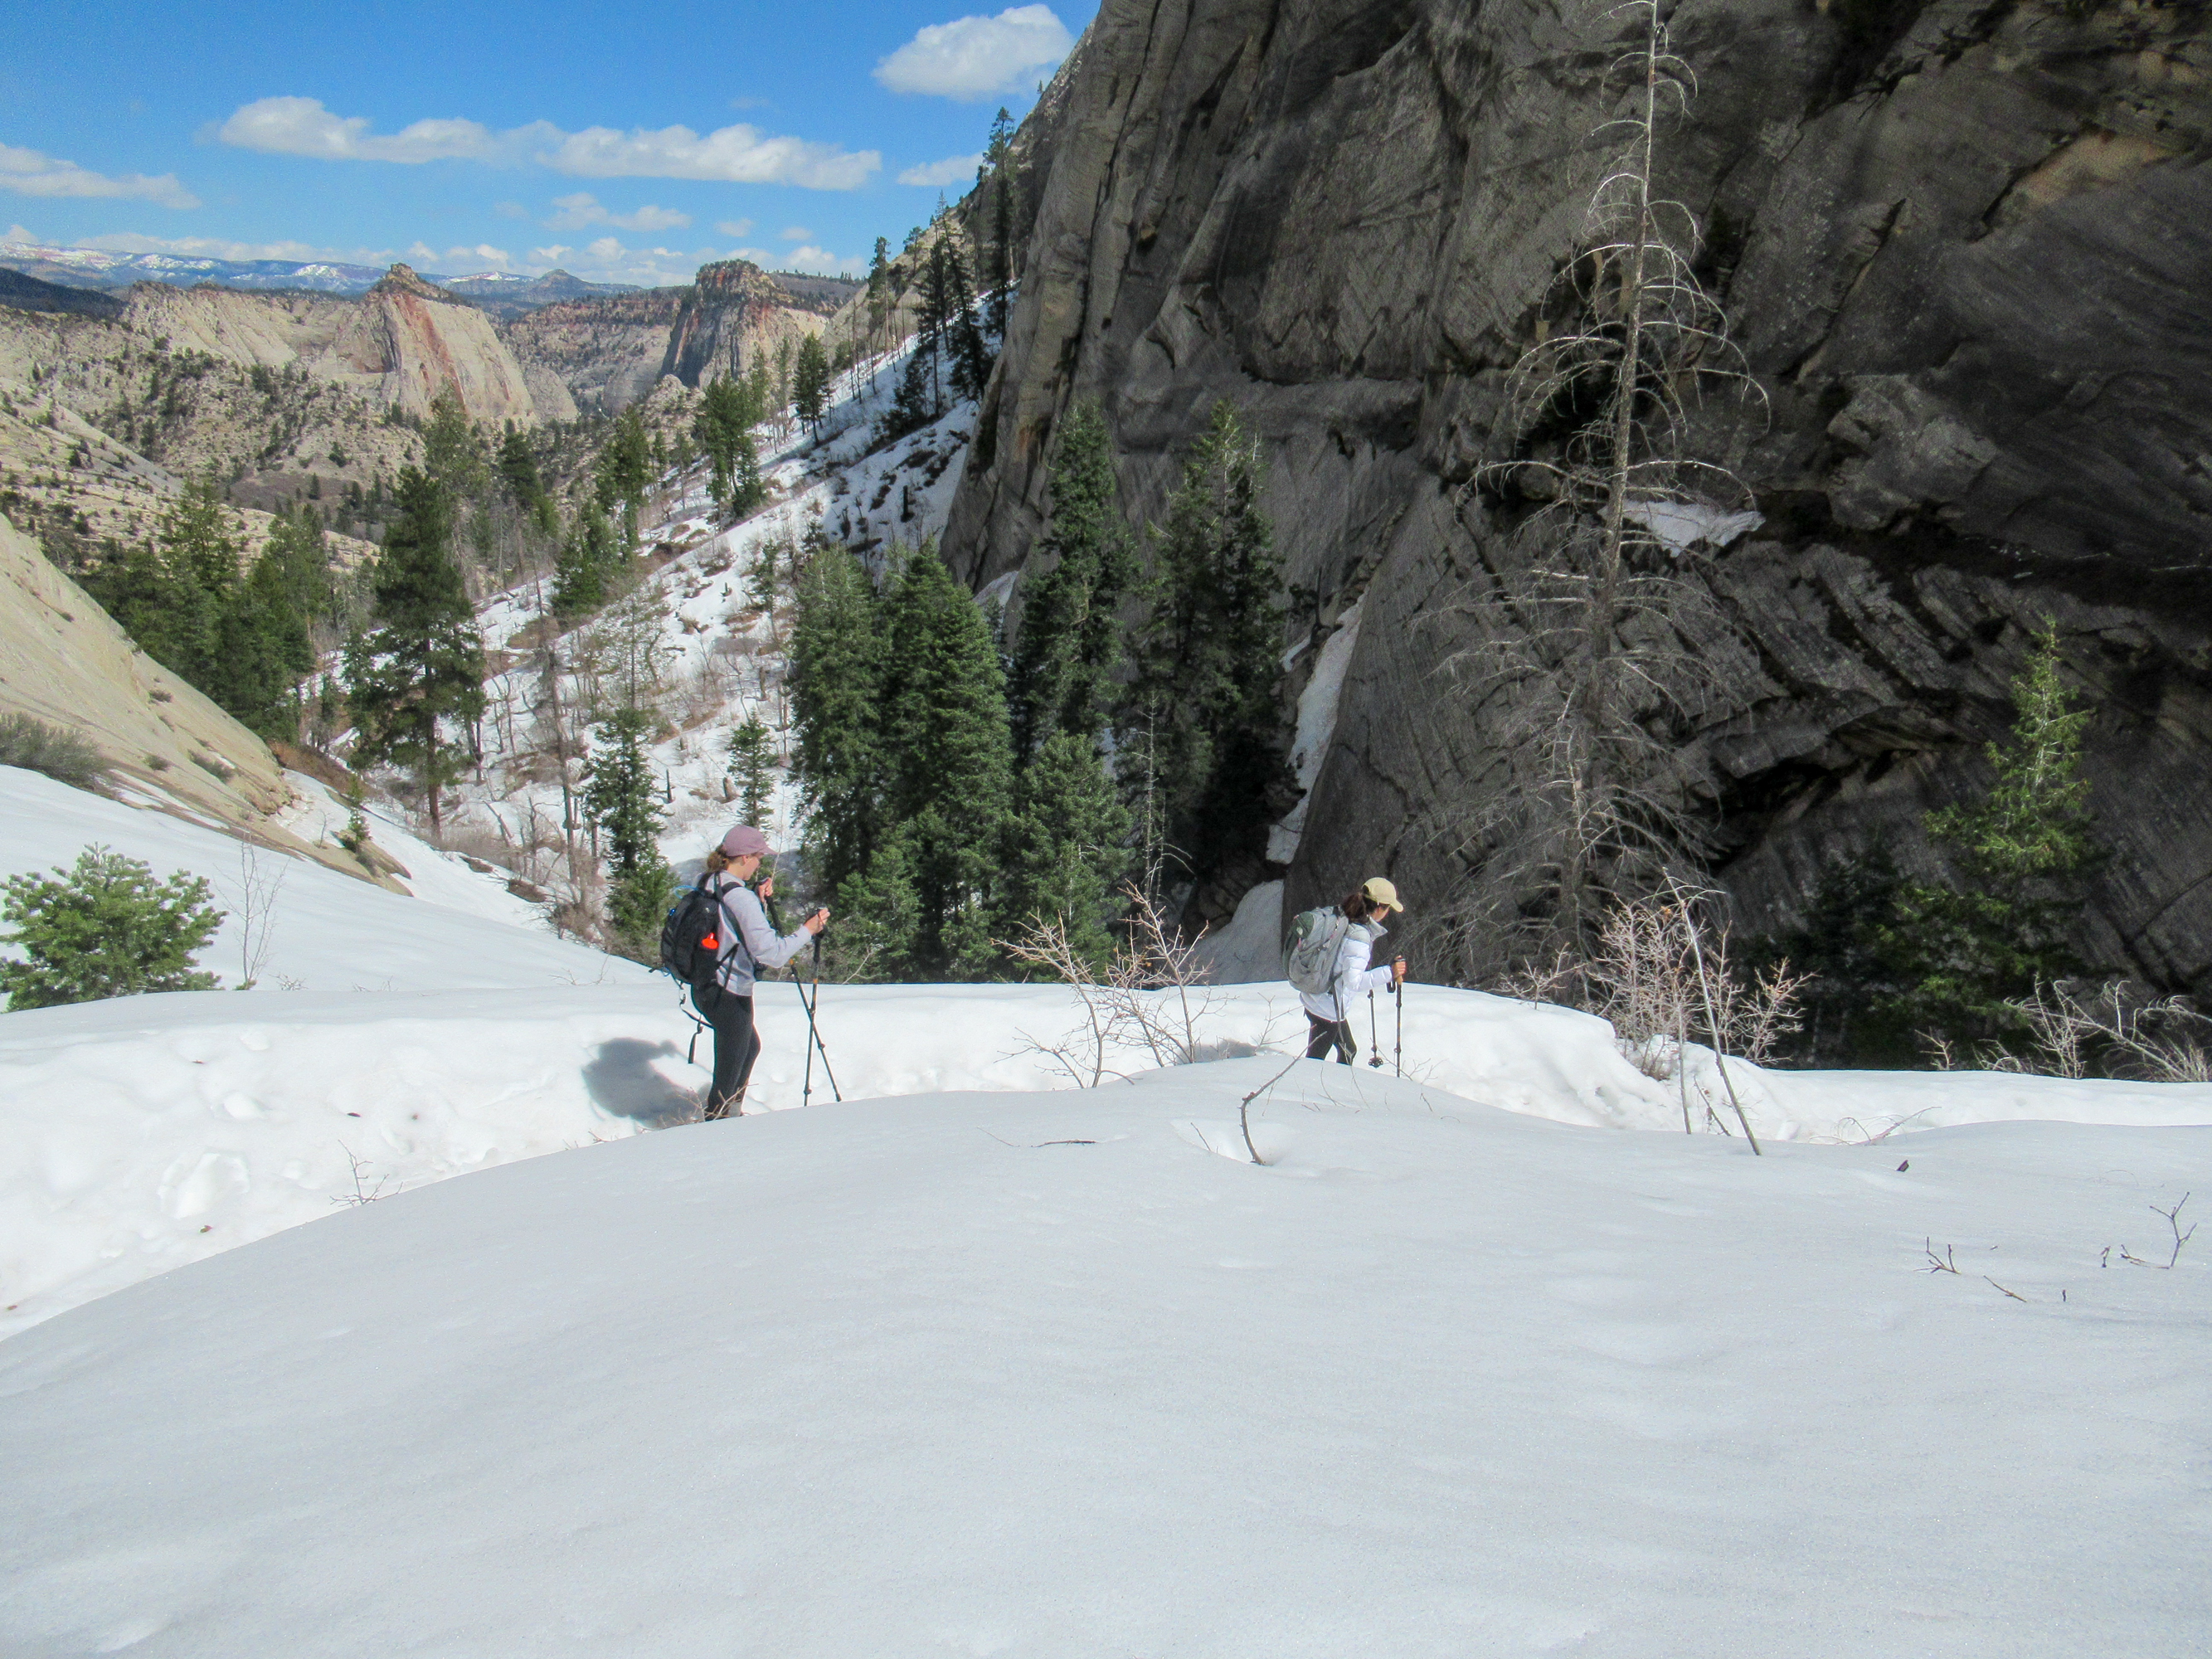 Snowfield in the area known as Little Siberia in Zion Canyon.